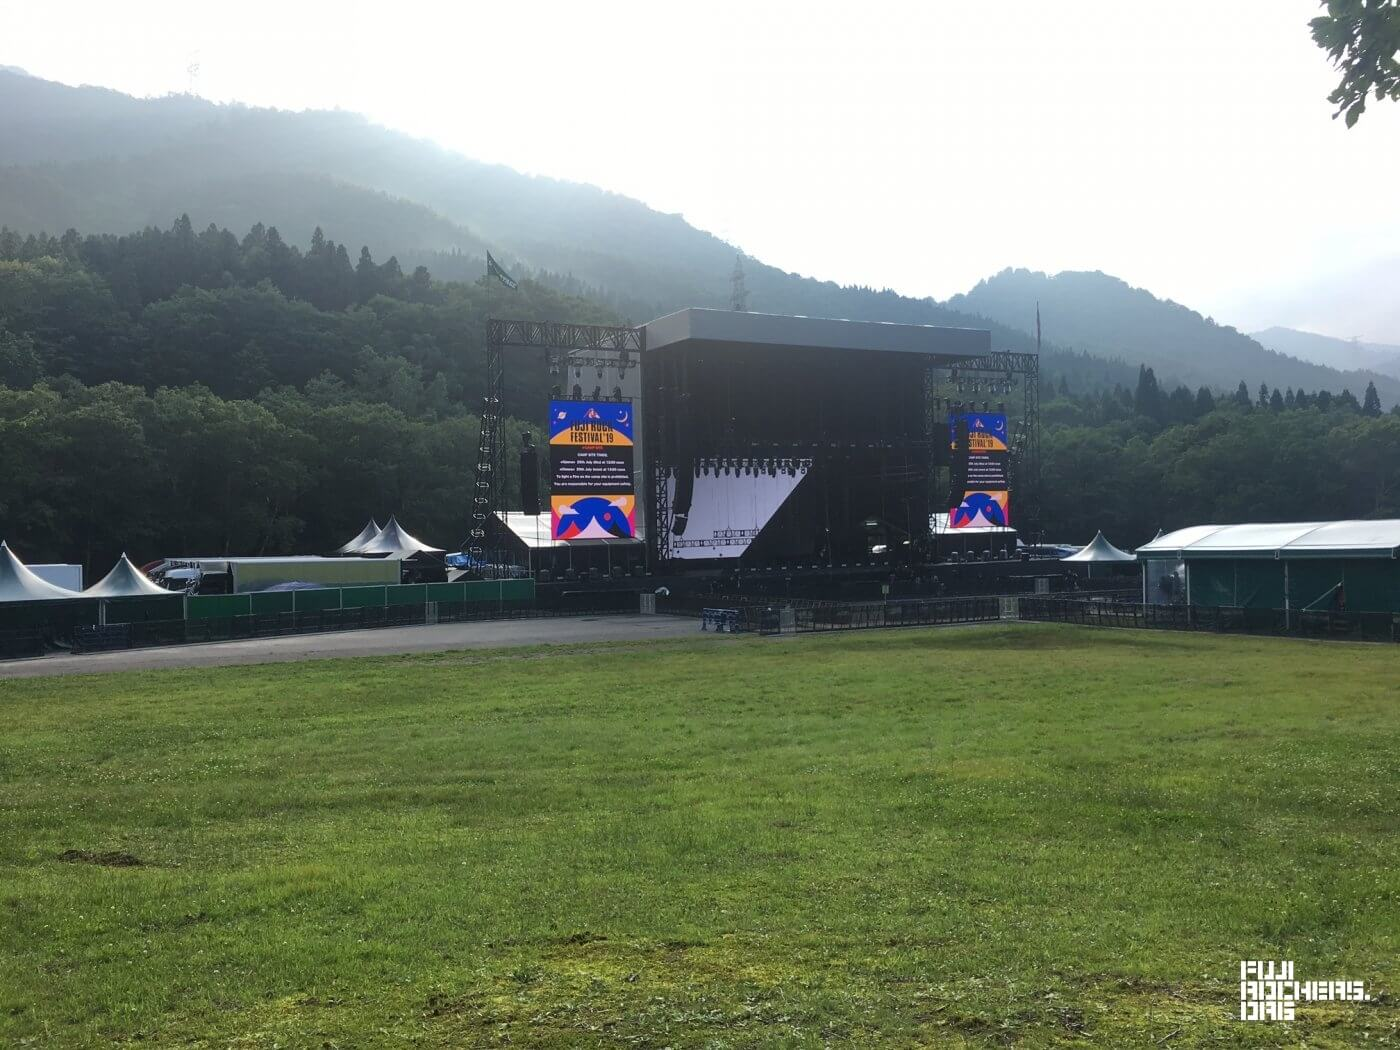 The Green Stage is Waiting…